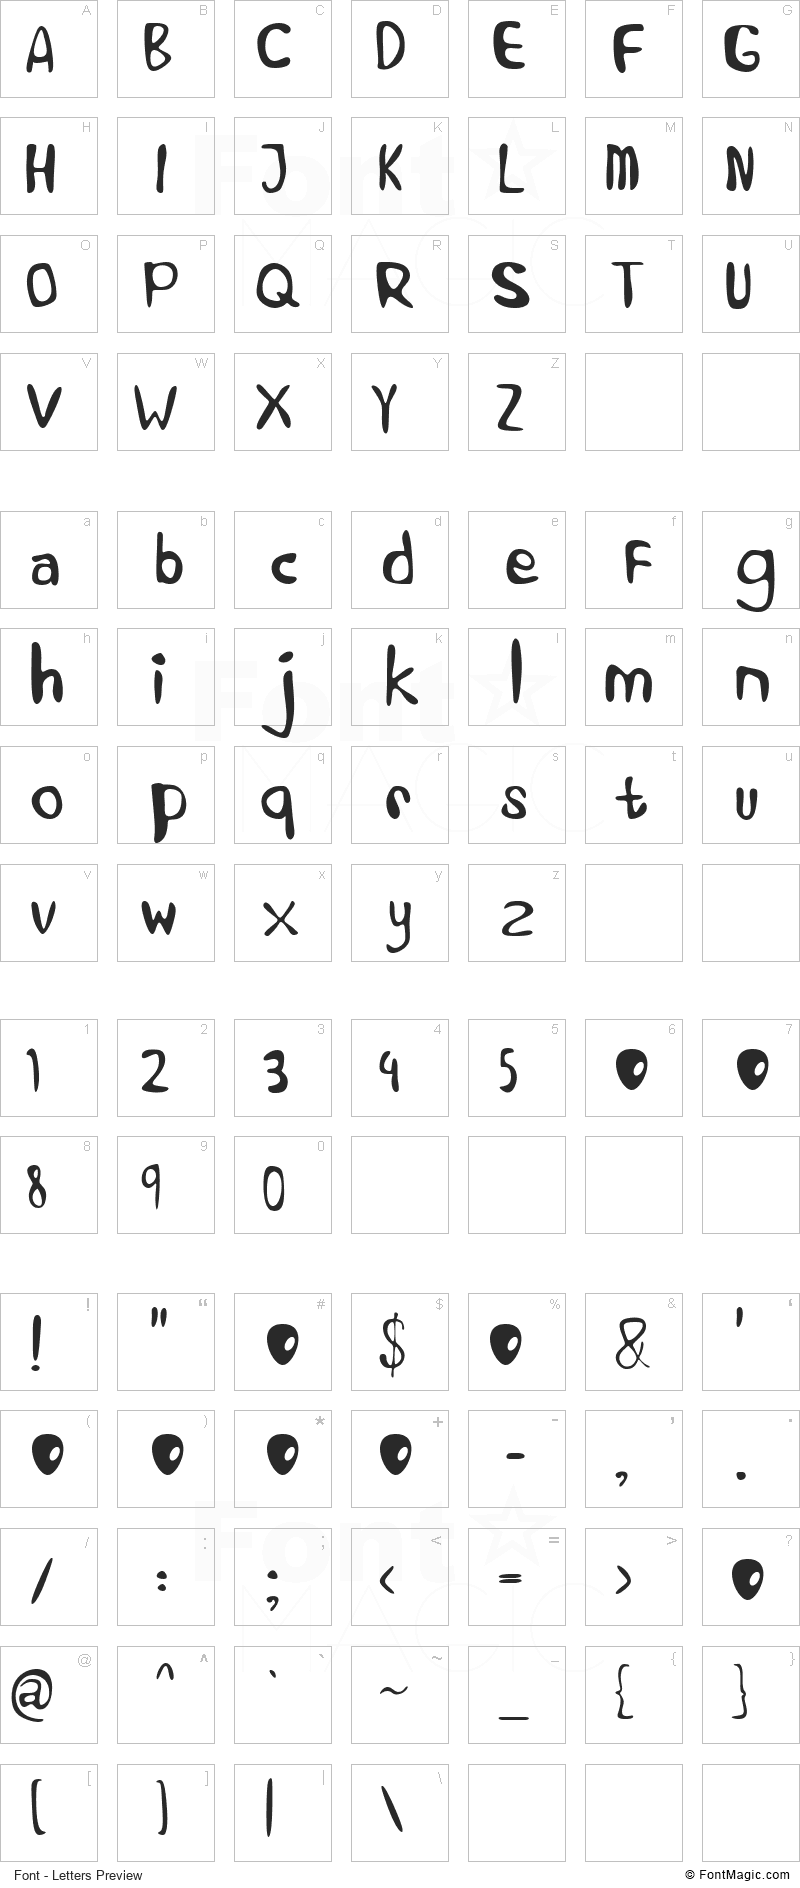 Alien Learns To Write Font - All Latters Preview Chart